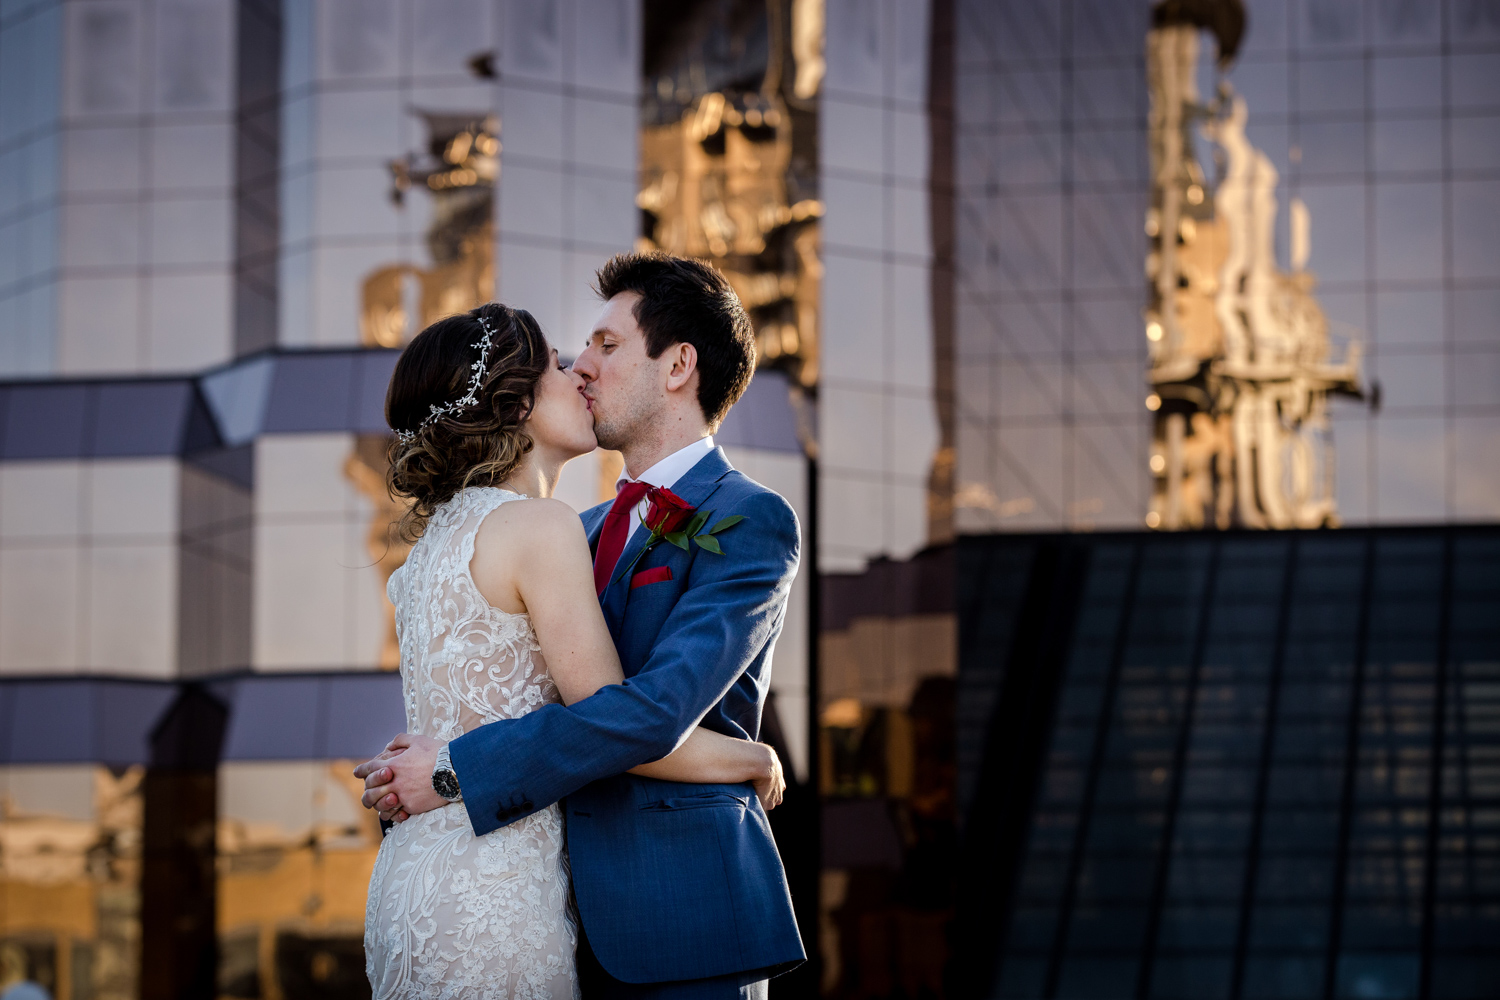 The bride and groom kiss during their Lowry Wedding